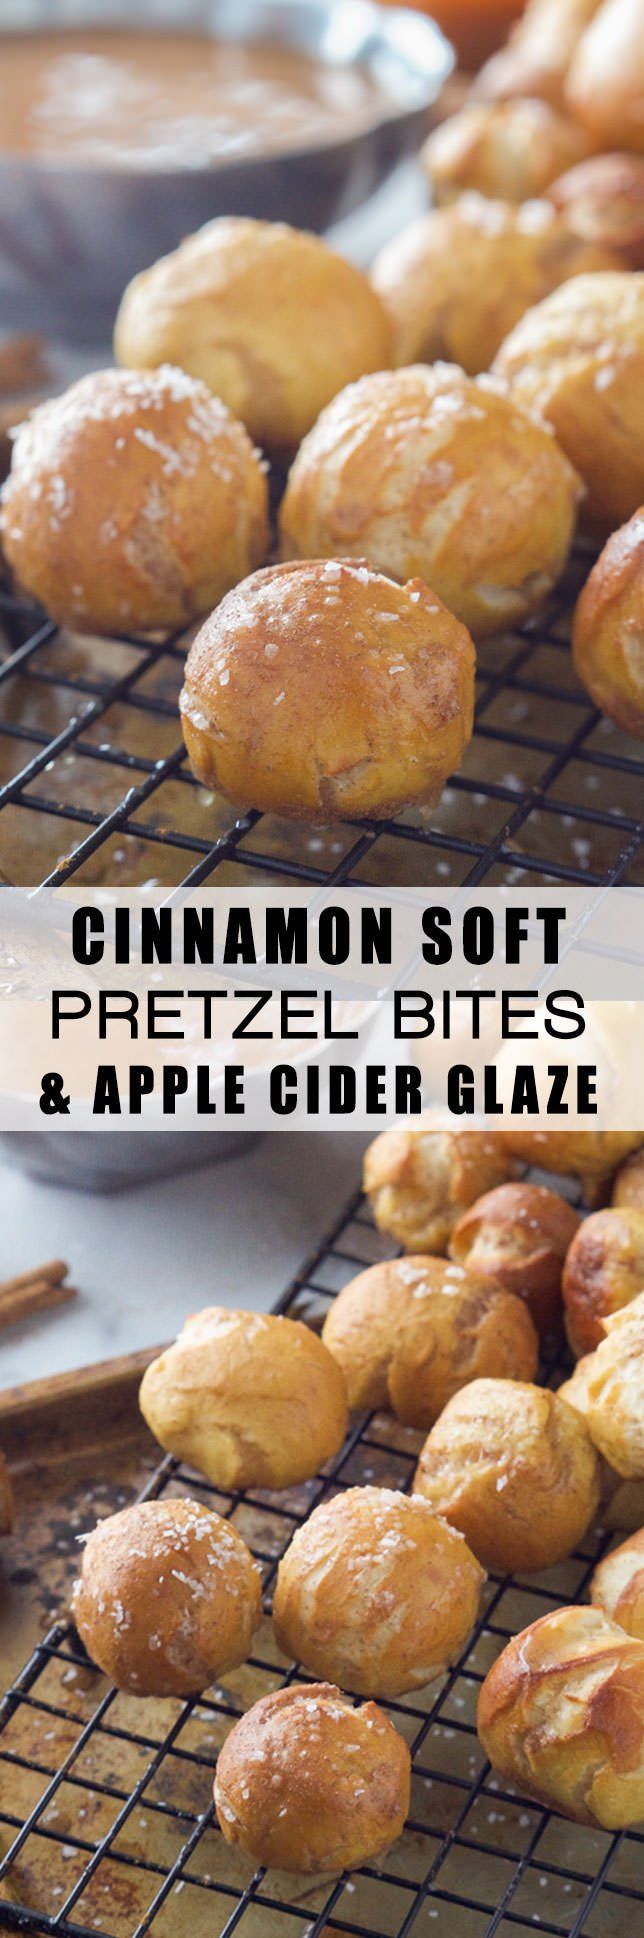 Homemade and easy Cinnamon Soft Pretzel Bites get a fall makeover! Loaded with cinnamon and coated in a light apple cider glaze!